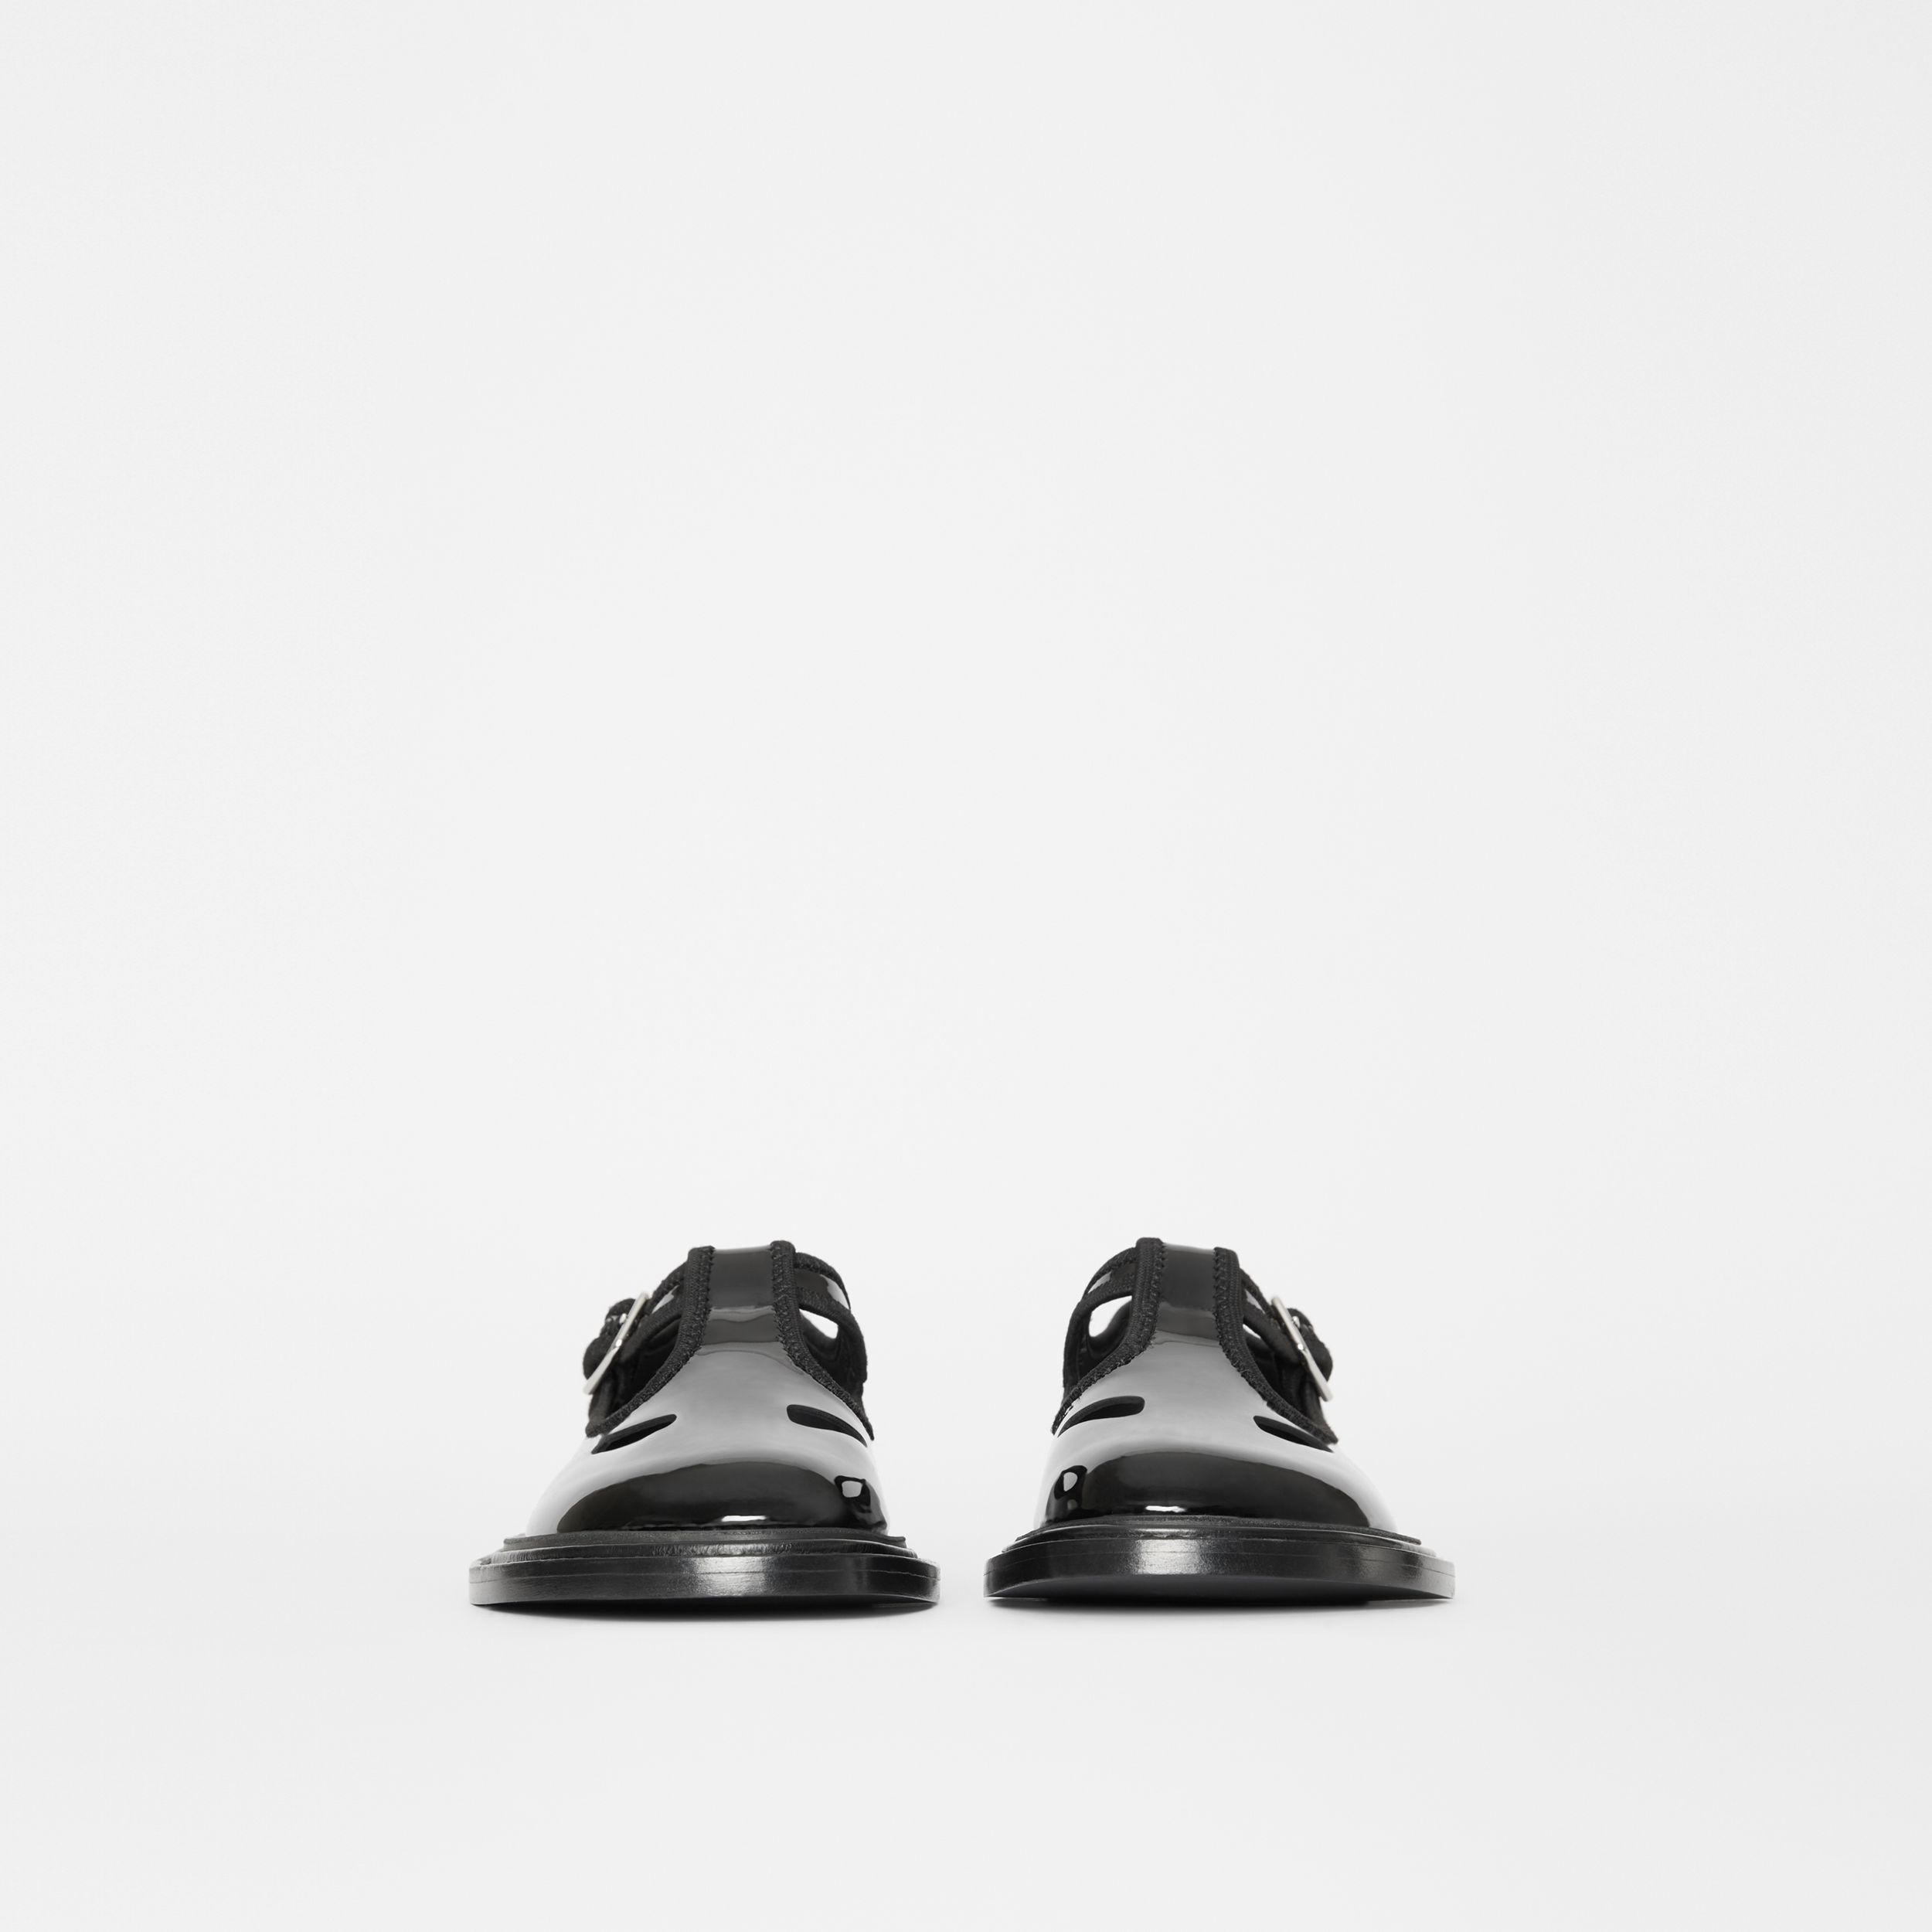 Patent Leather T-bar Shoes in Black - Women | Burberry - 4